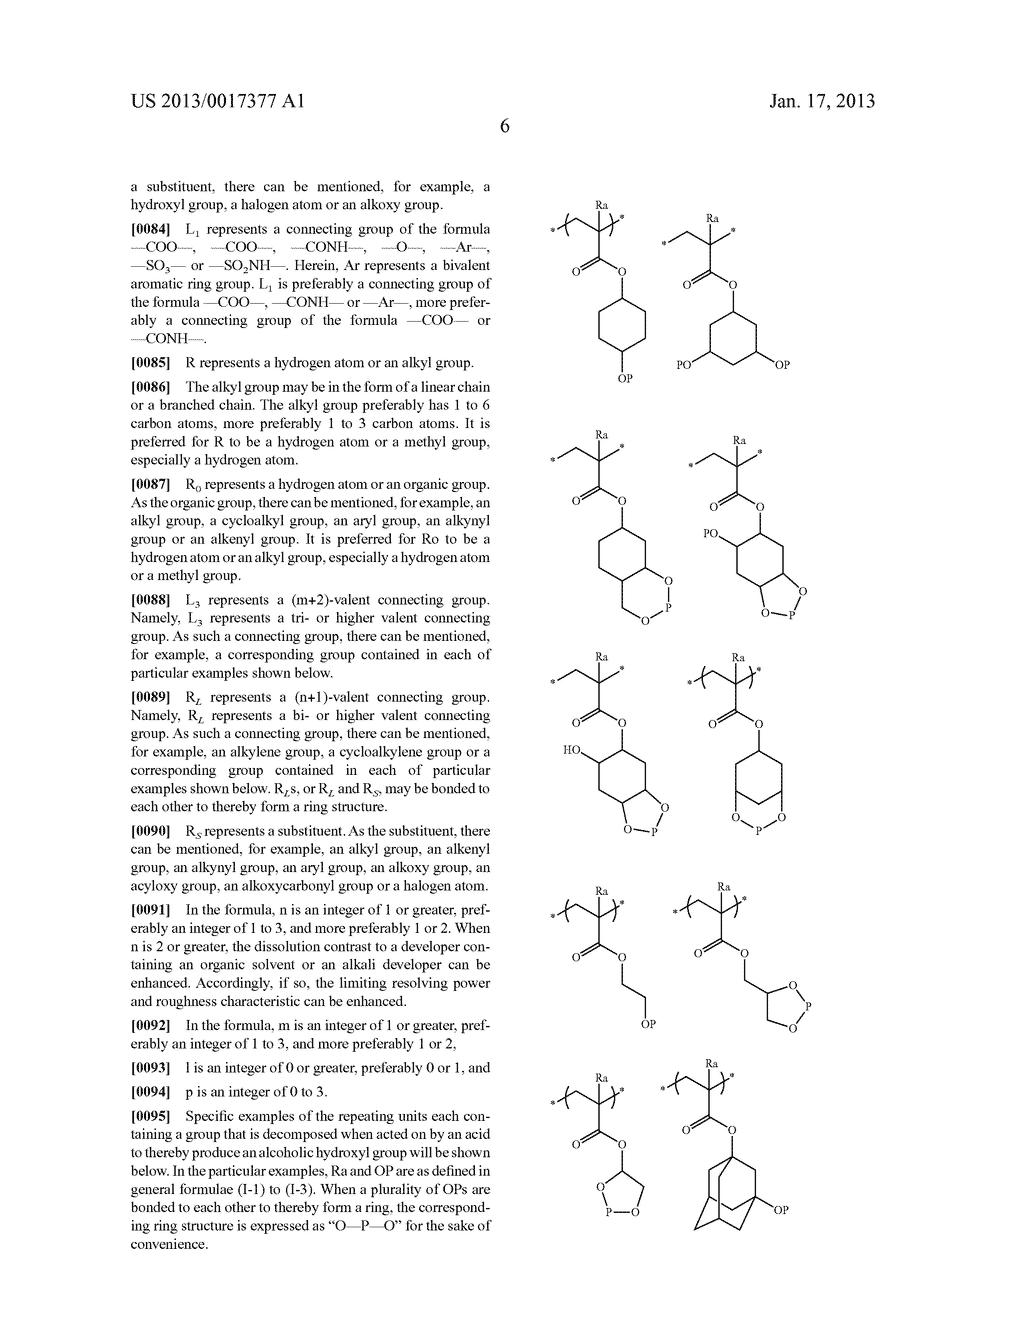 ACTINIC-RAY- OR RADIATION-SENSITIVE RESIN COMPOSITION AND METHOD OF     FORMING PATTERN USING THE SAMEAANM Kataoka; ShoheiAACI ShizuokaAACO JPAAGP Kataoka; Shohei Shizuoka JPAANM Iwato; KaoruAACI ShizuokaAACO JPAAGP Iwato; Kaoru Shizuoka JPAANM Kamimura; SouAACI ShizuokaAACO JPAAGP Kamimura; Sou Shizuoka JPAANM Tsuchihashi; ToruAACI ShizuokaAACO JPAAGP Tsuchihashi; Toru Shizuoka JPAANM Enomoto; YuichiroAACI ShizuokaAACO JPAAGP Enomoto; Yuichiro Shizuoka JPAANM Fujii; KanaAACI ShizuokaAACO JPAAGP Fujii; Kana Shizuoka JPAANM Mizutani; KazuyoshiAACI ShizuokaAACO JPAAGP Mizutani; Kazuyoshi Shizuoka JPAANM Tarutani; ShinjiAACI ShizuokaAACO JPAAGP Tarutani; Shinji Shizuoka JPAANM Kato; KeitaAACI ShizuokaAACO JPAAGP Kato; Keita Shizuoka JP - diagram, schematic, and image 07